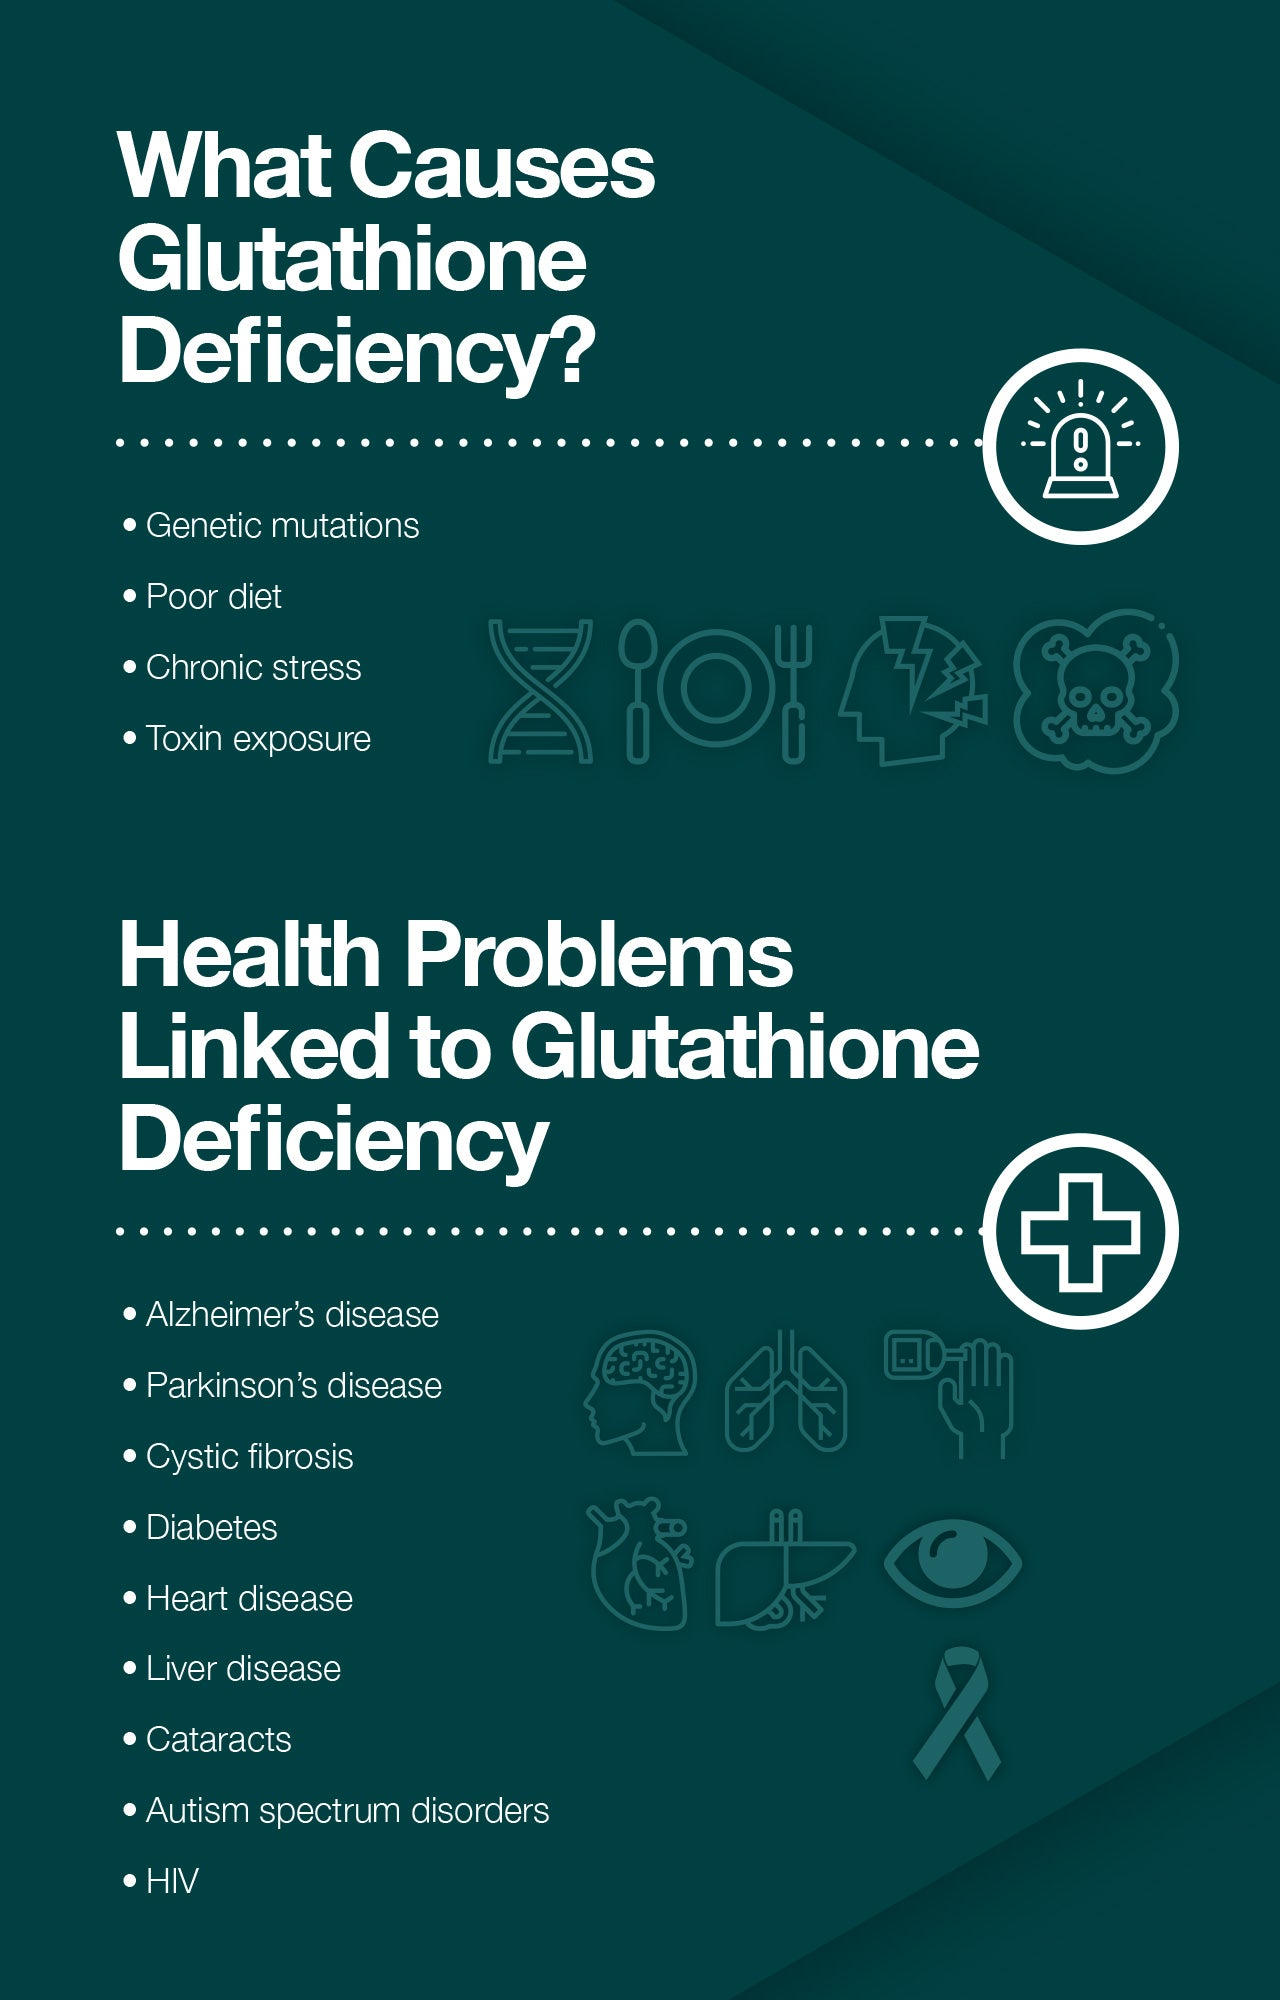 What Causes Glutathione Deficiency?